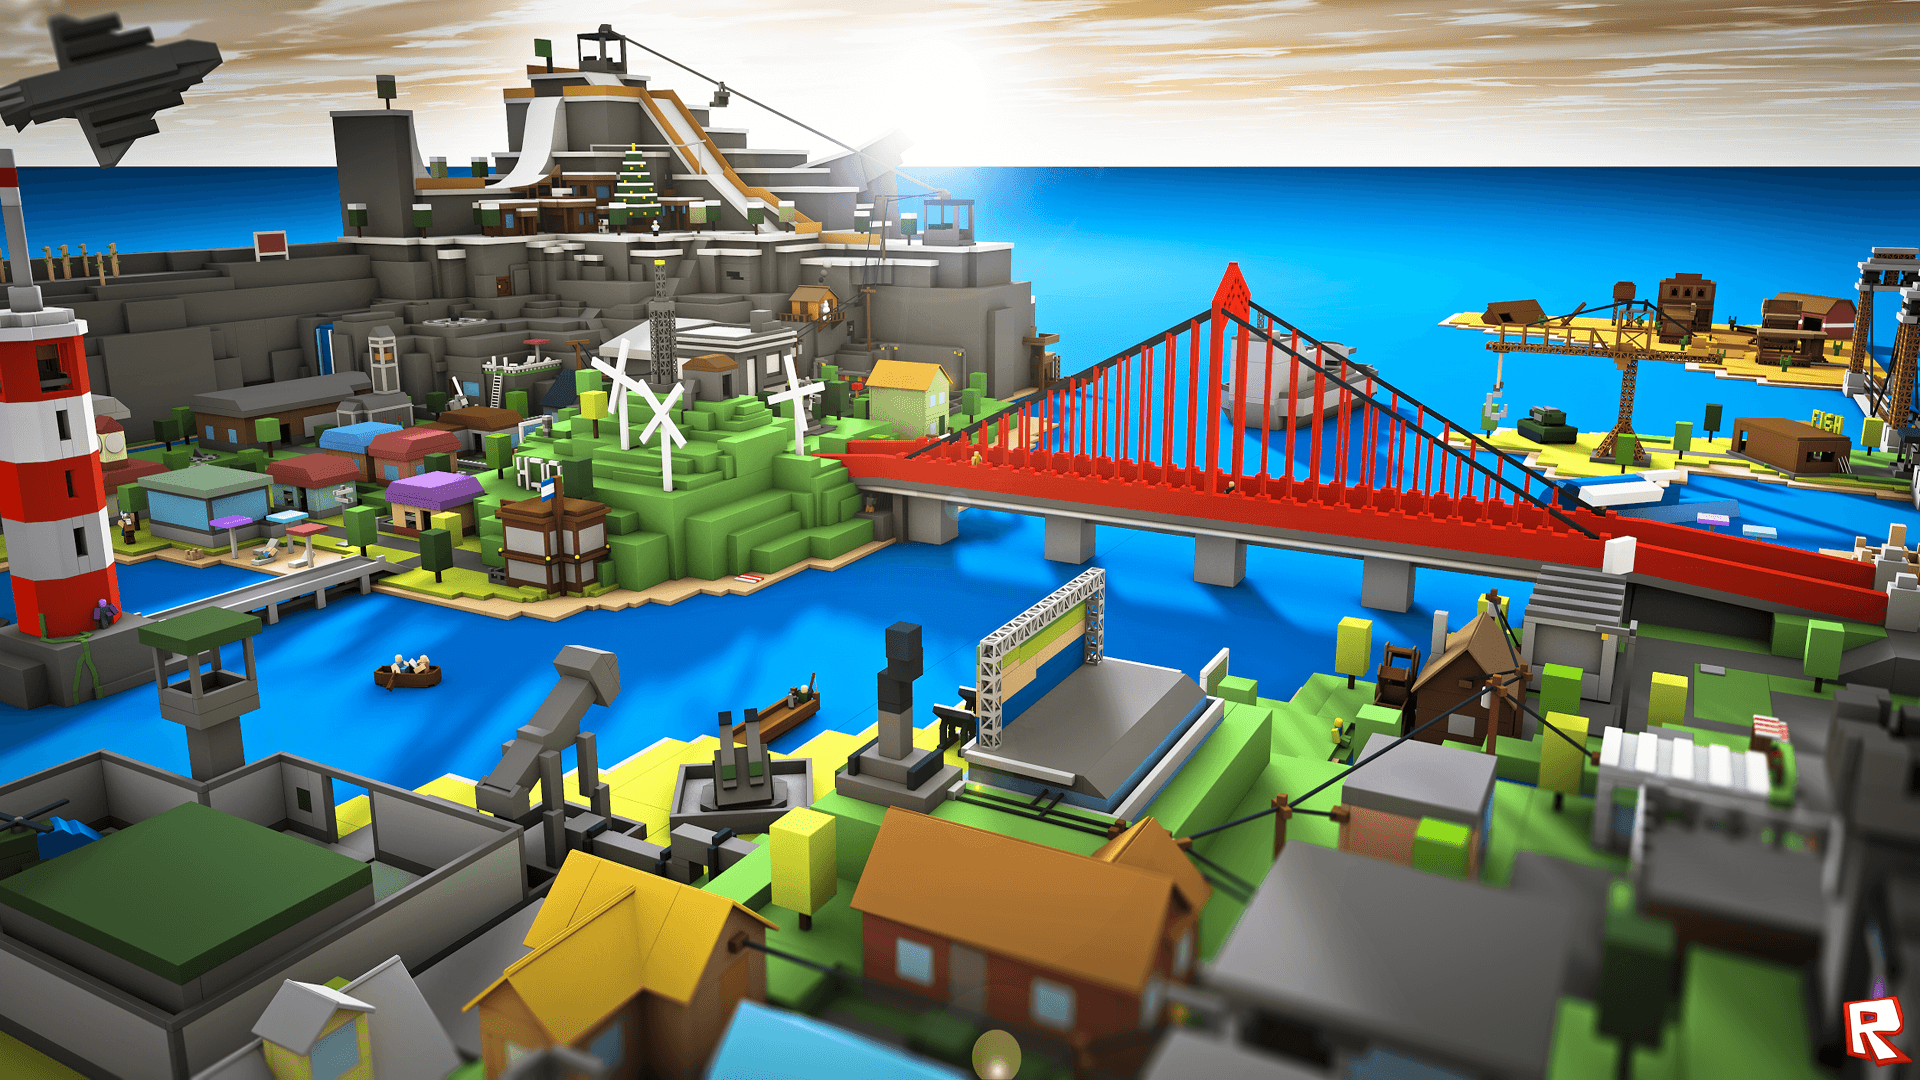 Roblox Wallpapers Top Free Roblox Backgrounds Wallpaperaccess